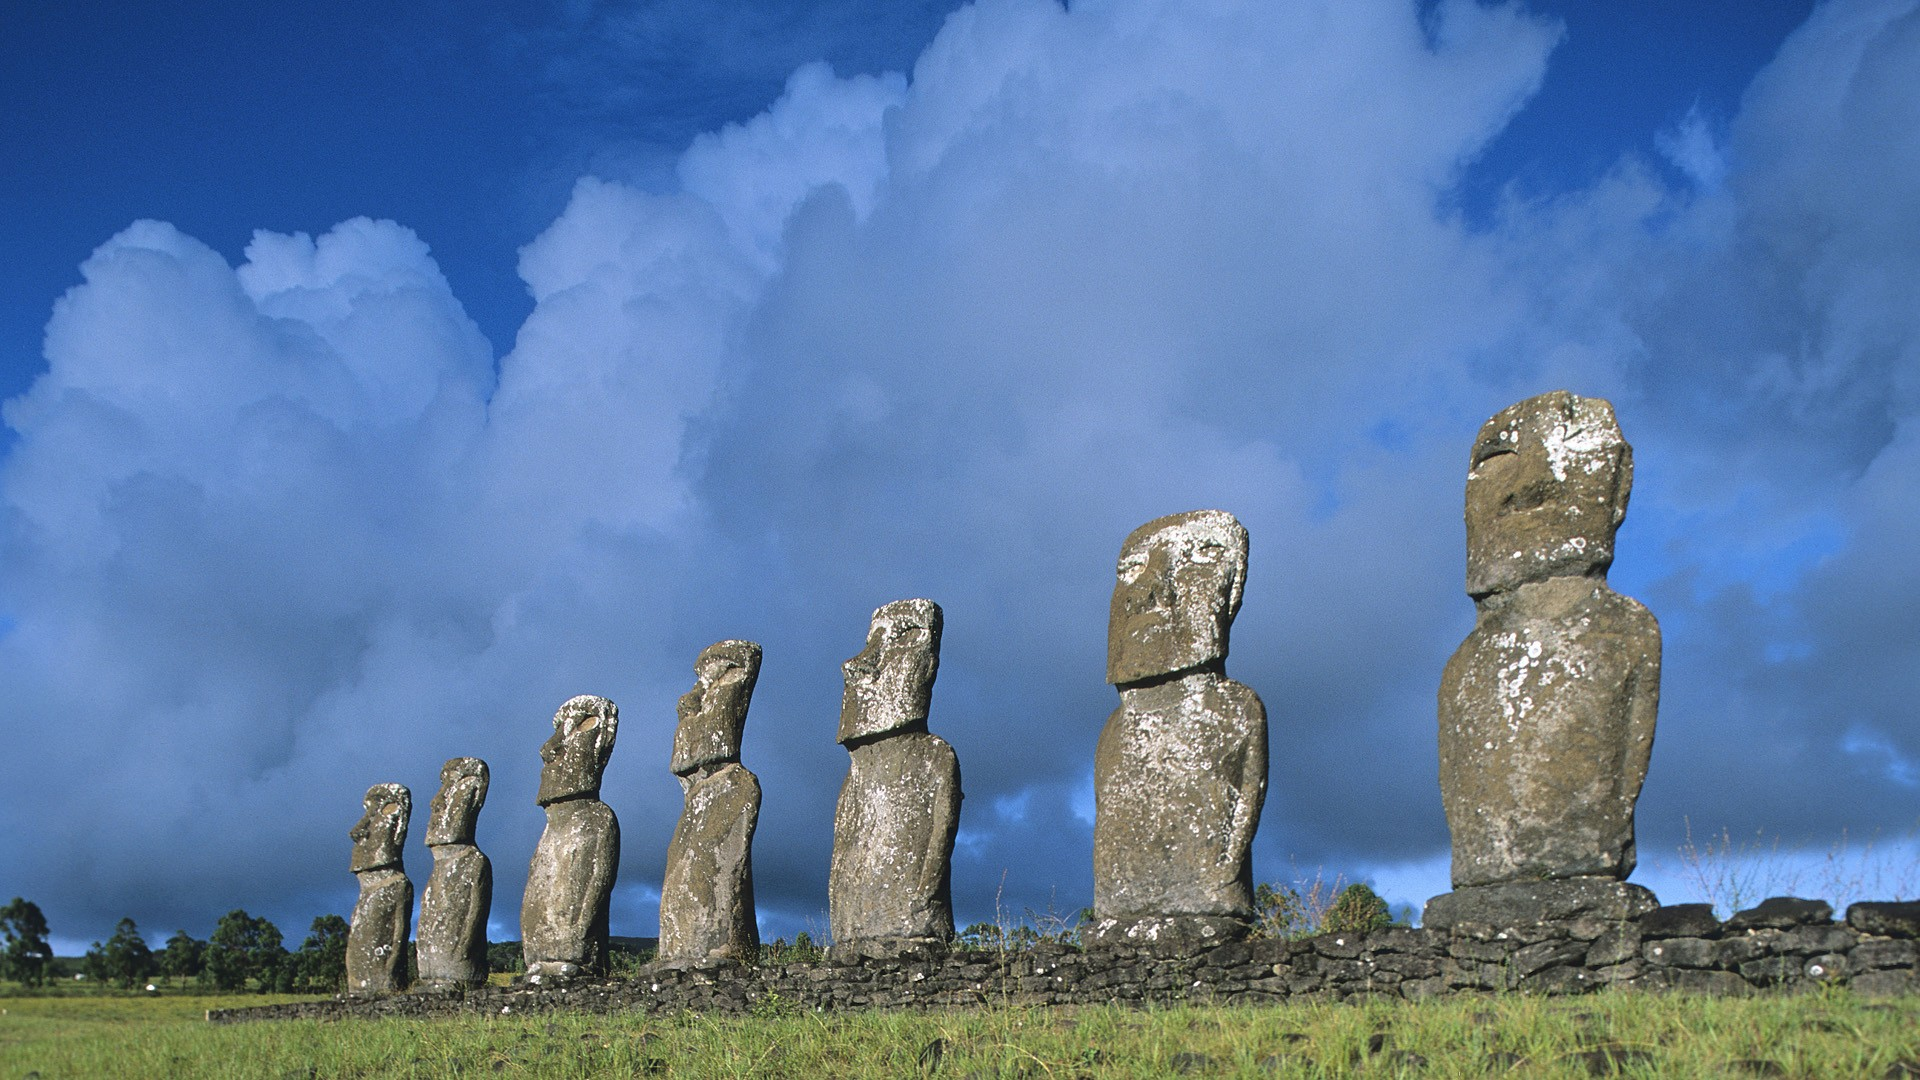 Wide HD Cool Easter Island Pictures Wallpaper FLGX HD 51659 KB 1920x1080